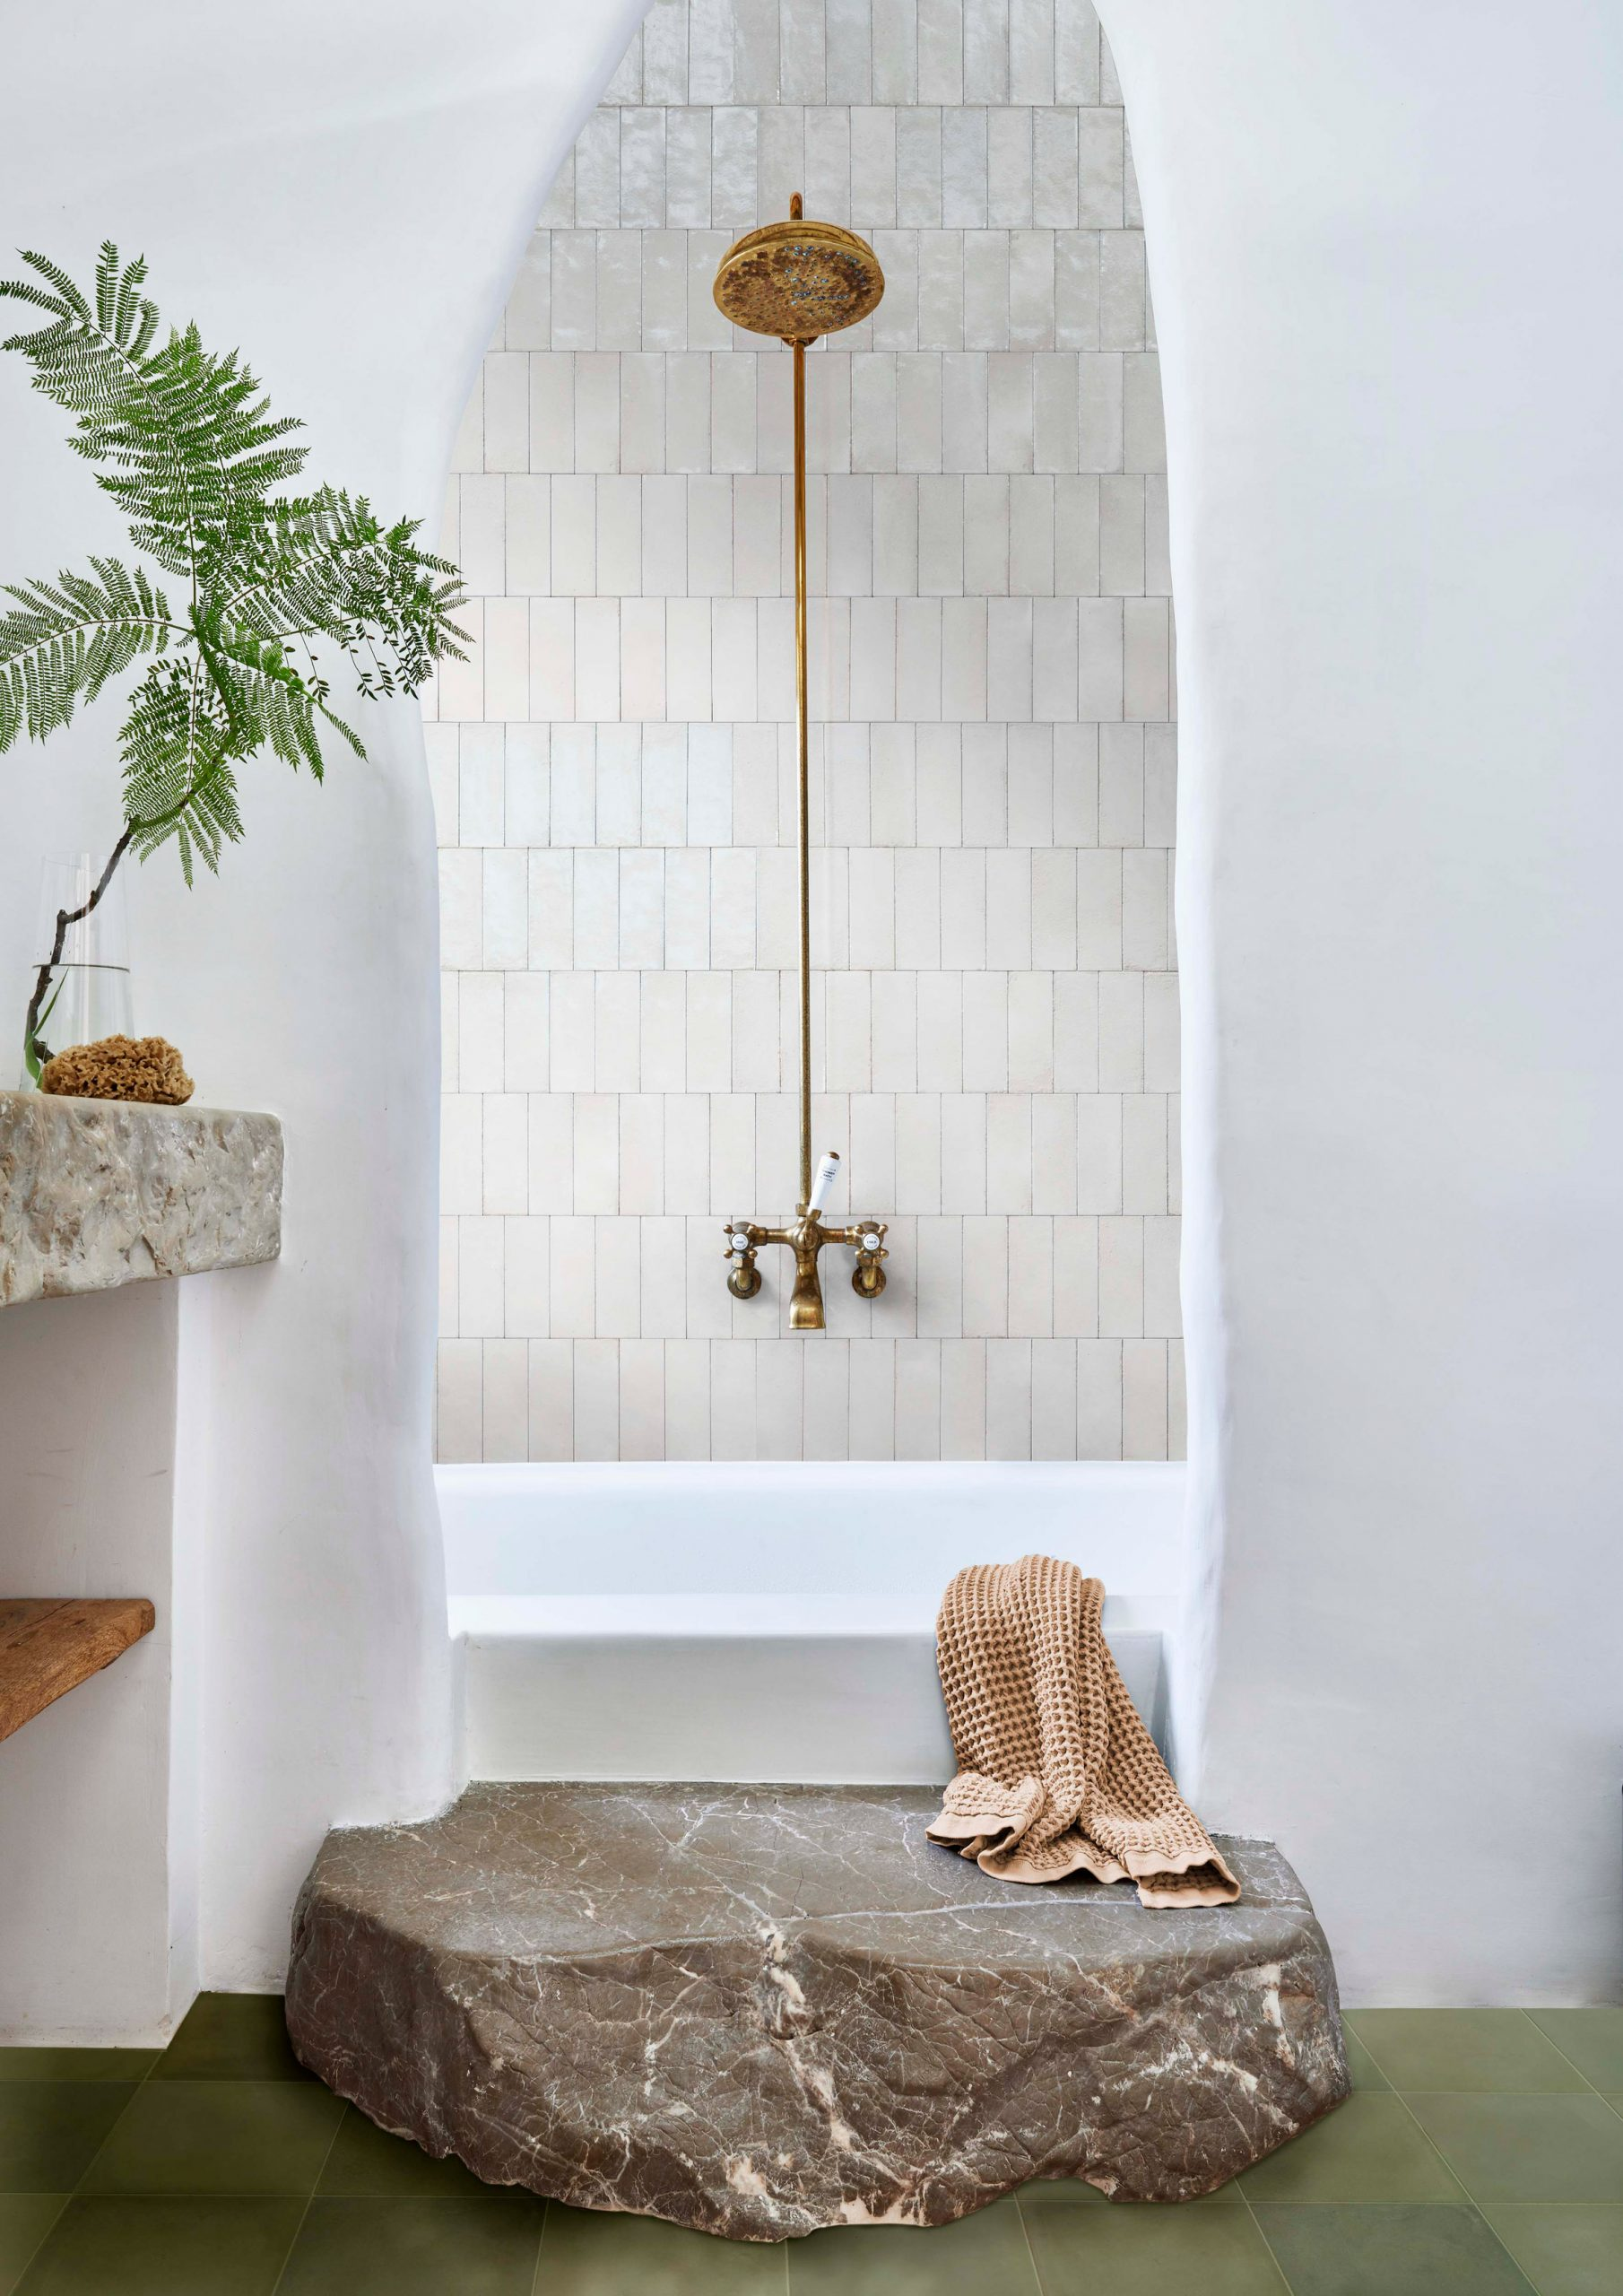 Marazzi is an Italian ceramic tile manufacturer founded in 1935